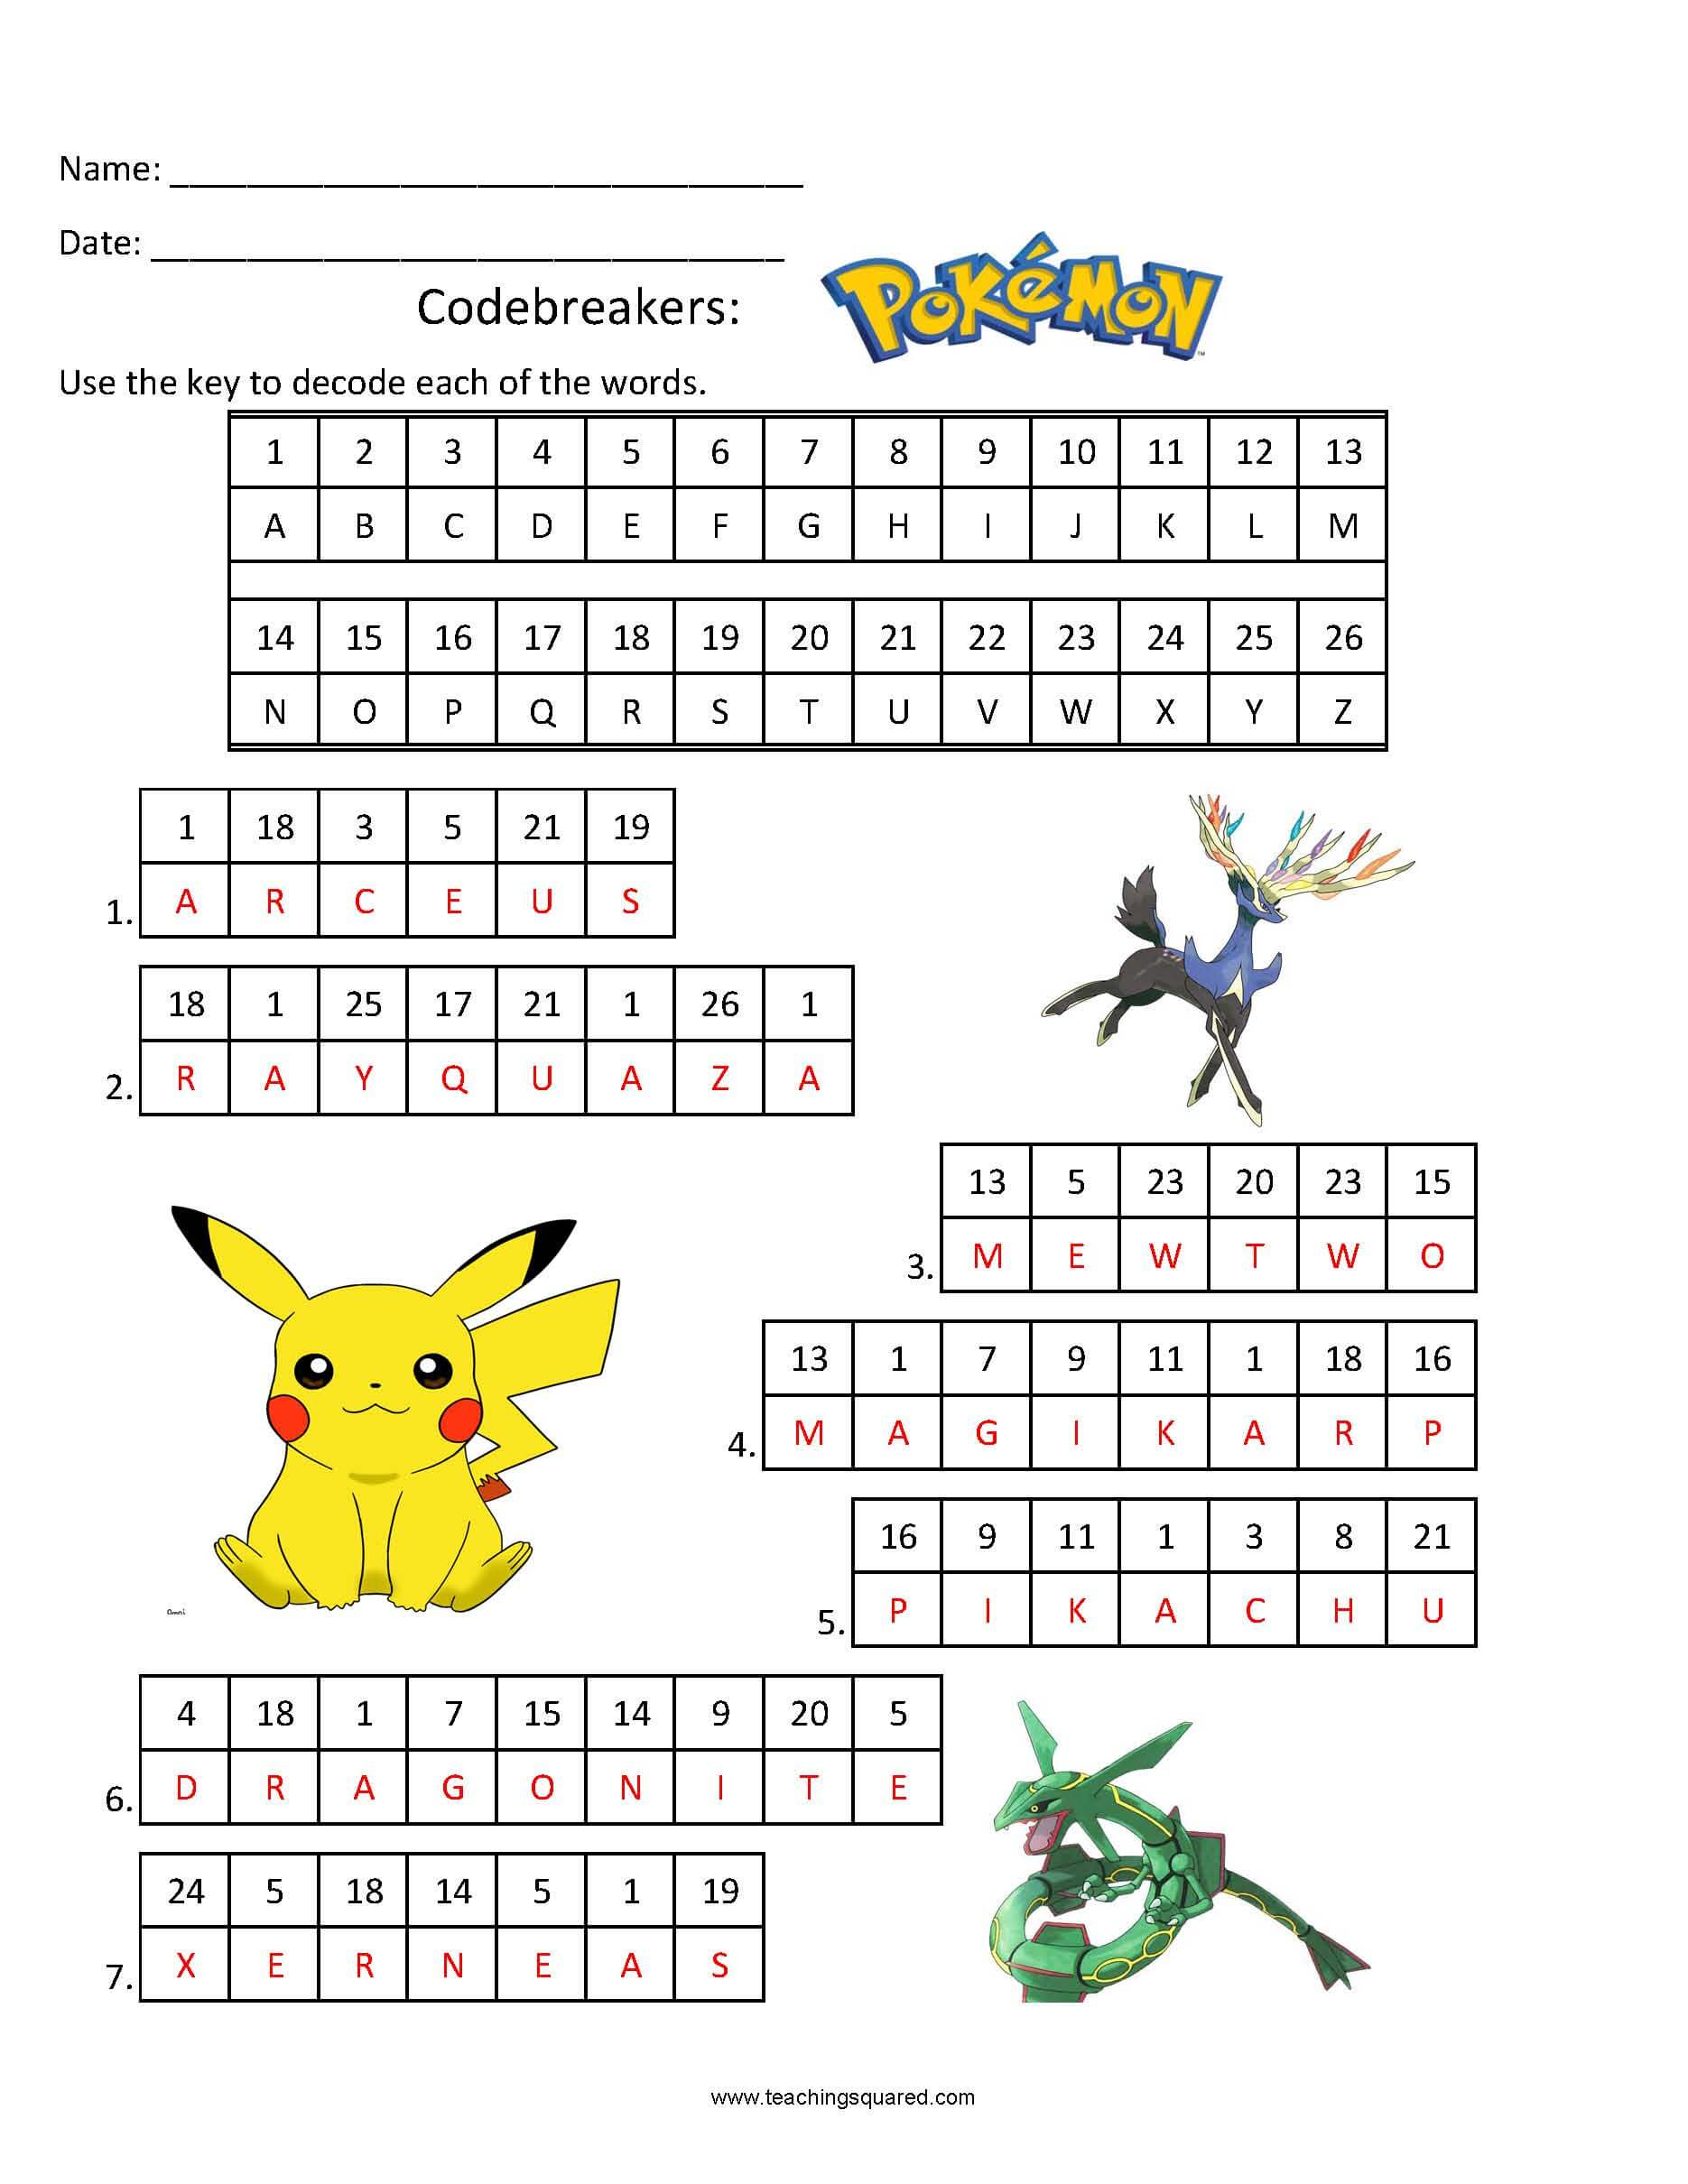 Codebreakers- Pokemon Fun Puzzle for kids